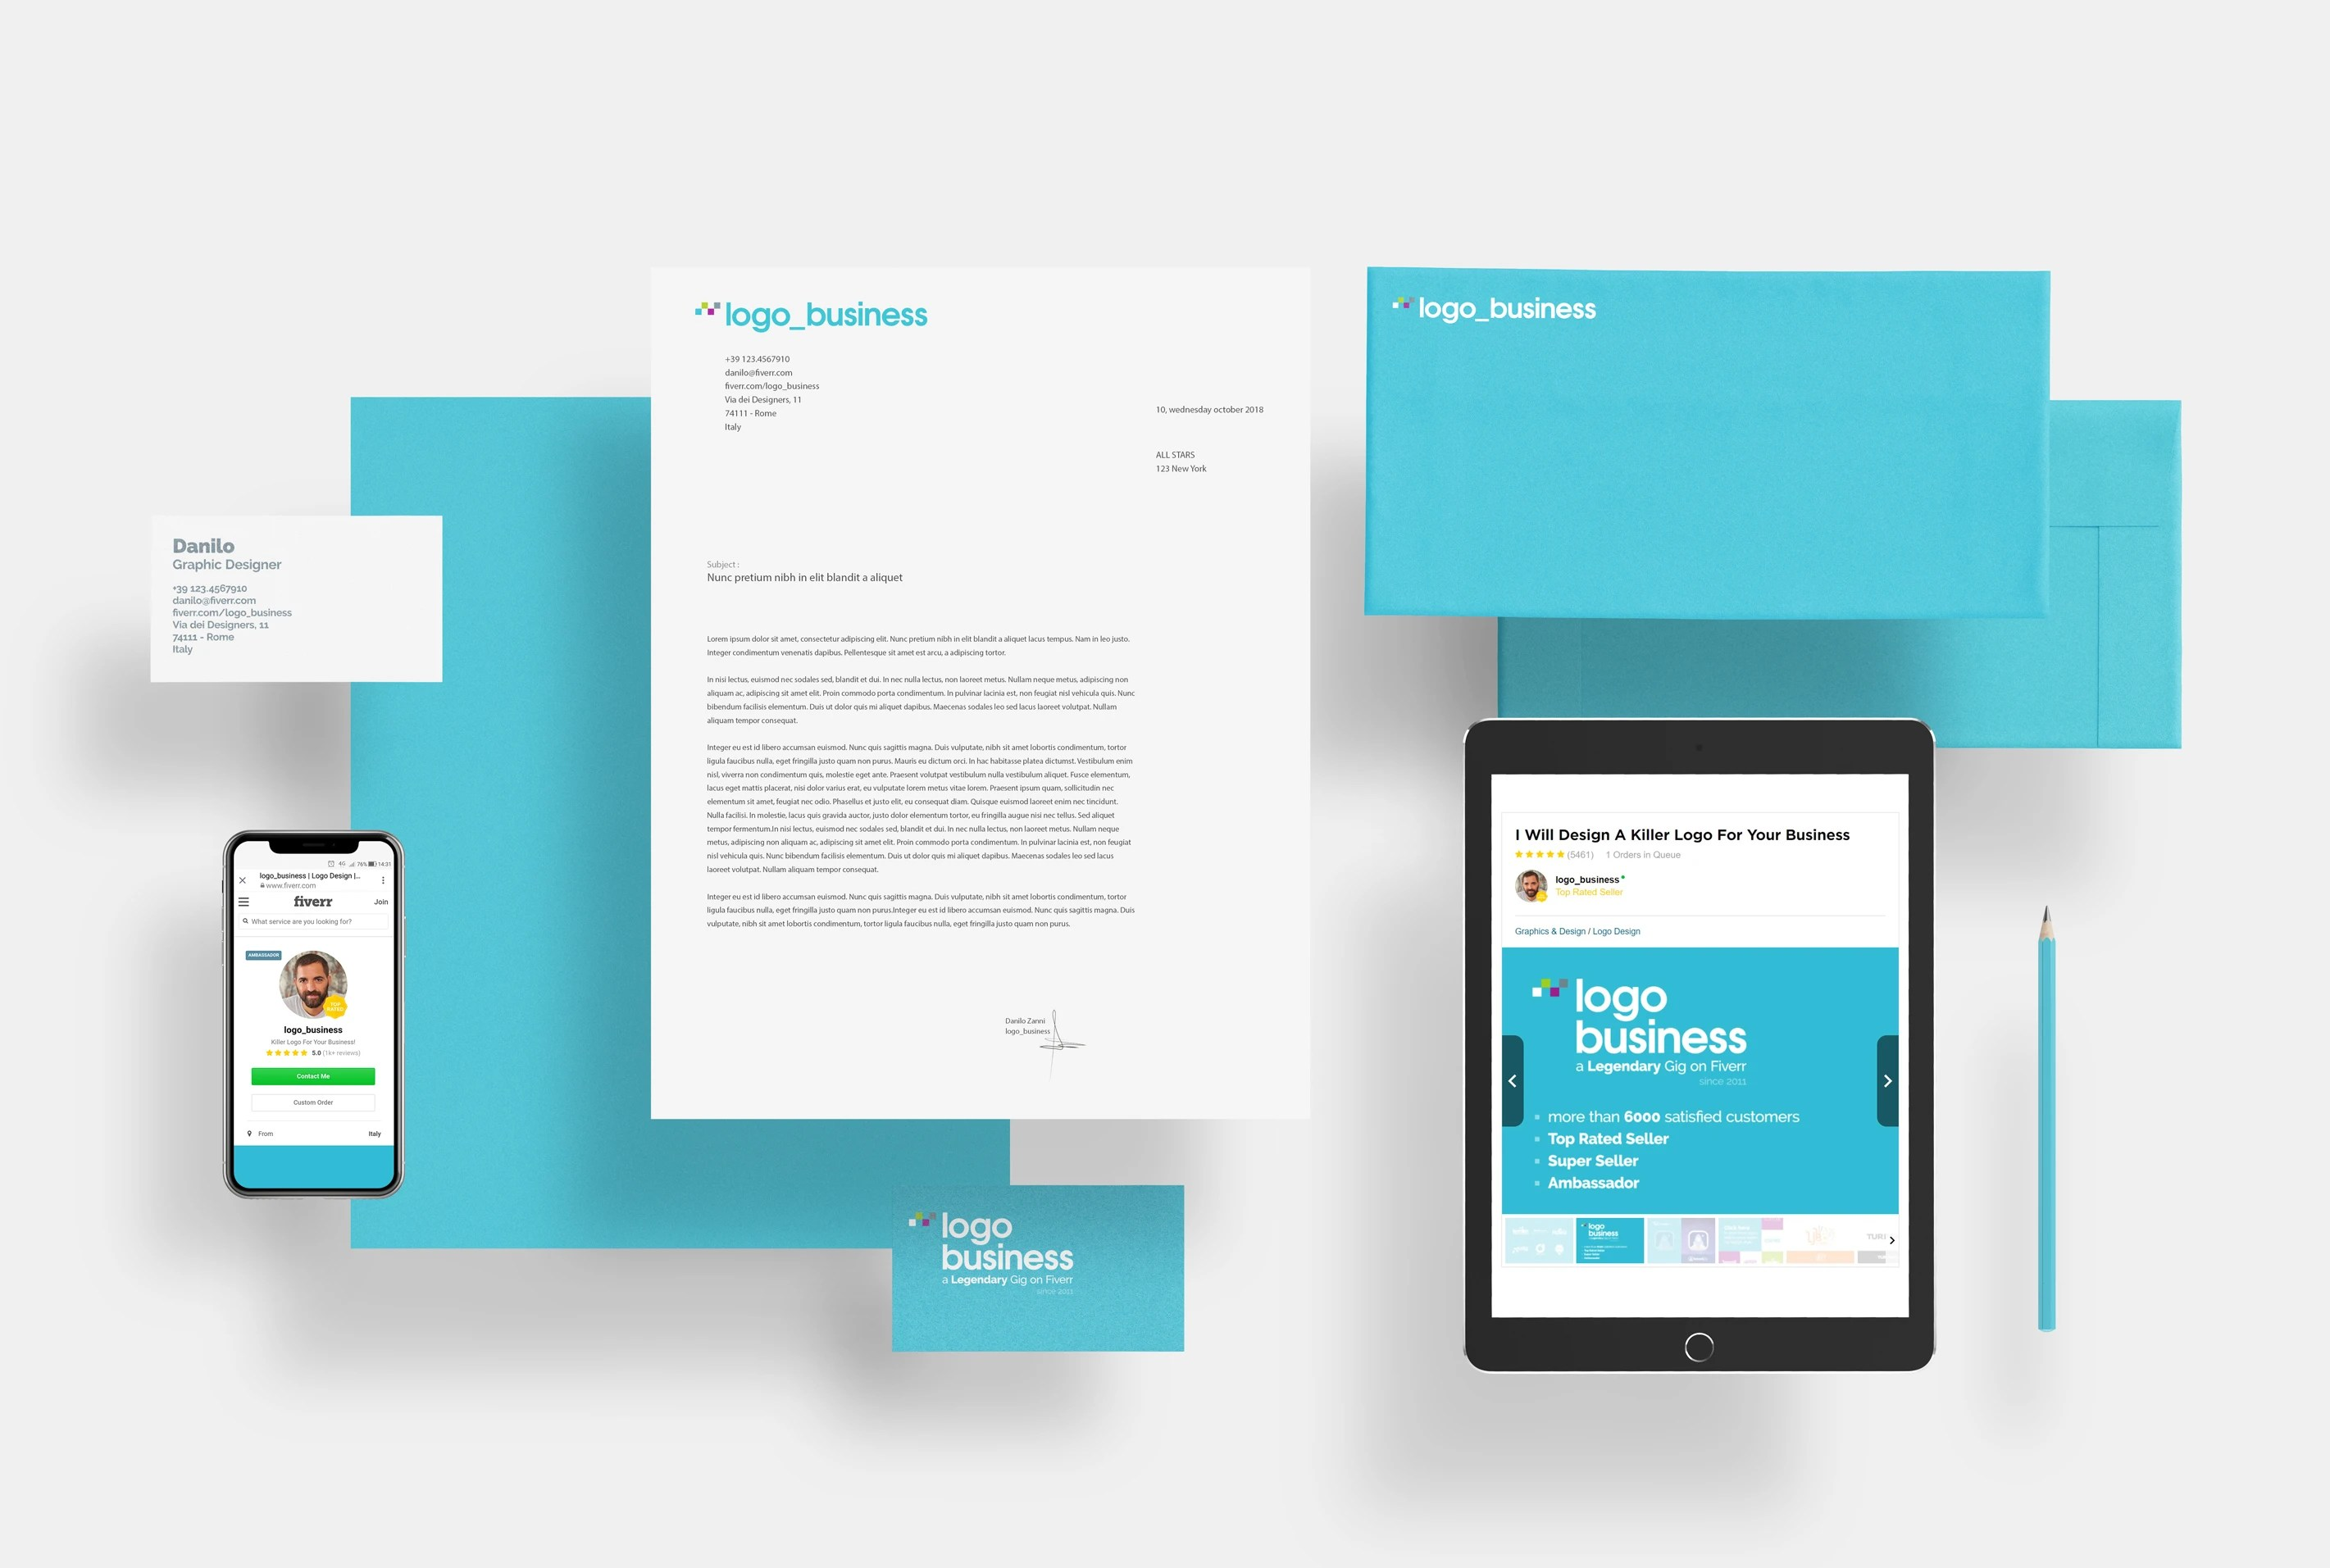 Corporate Graphic Design Design A Killer Stationery For Your Business